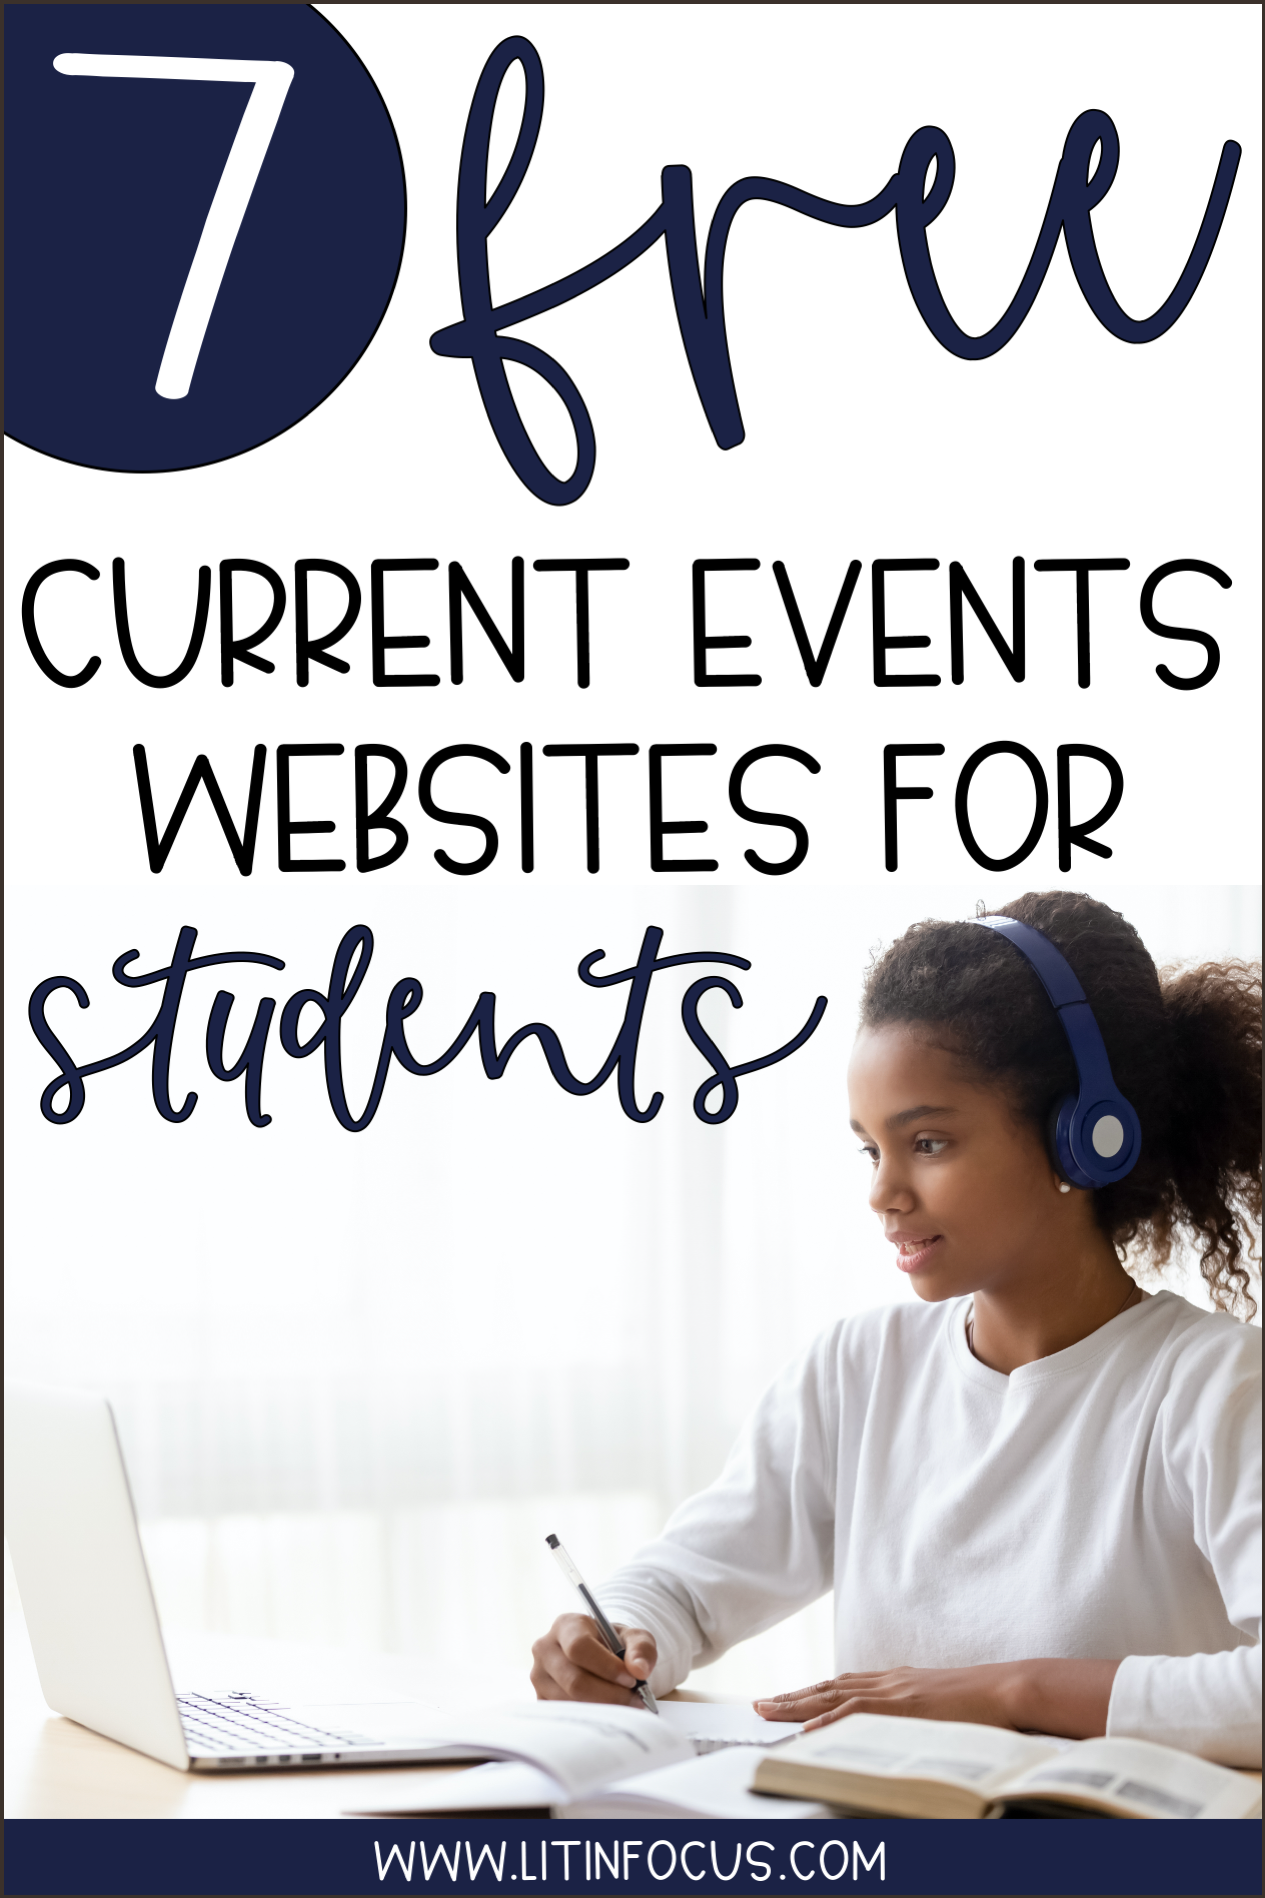 Seven free current event websites for students